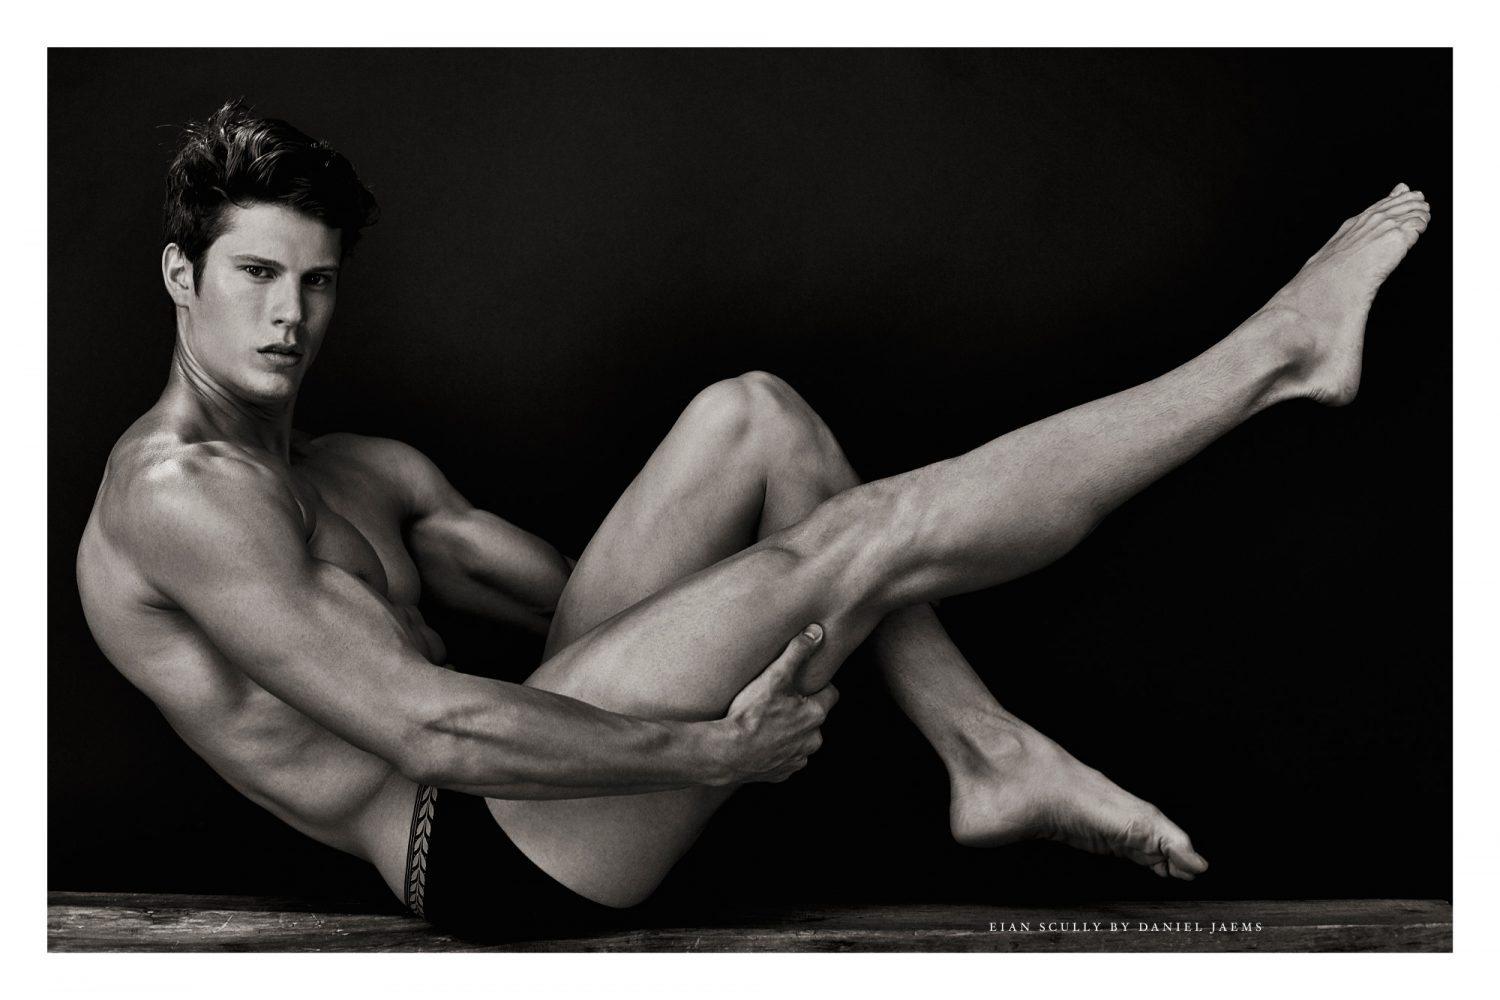 Eian-Scully-by-Daniel-Jaems-Obsession-No17-013-1500x1000